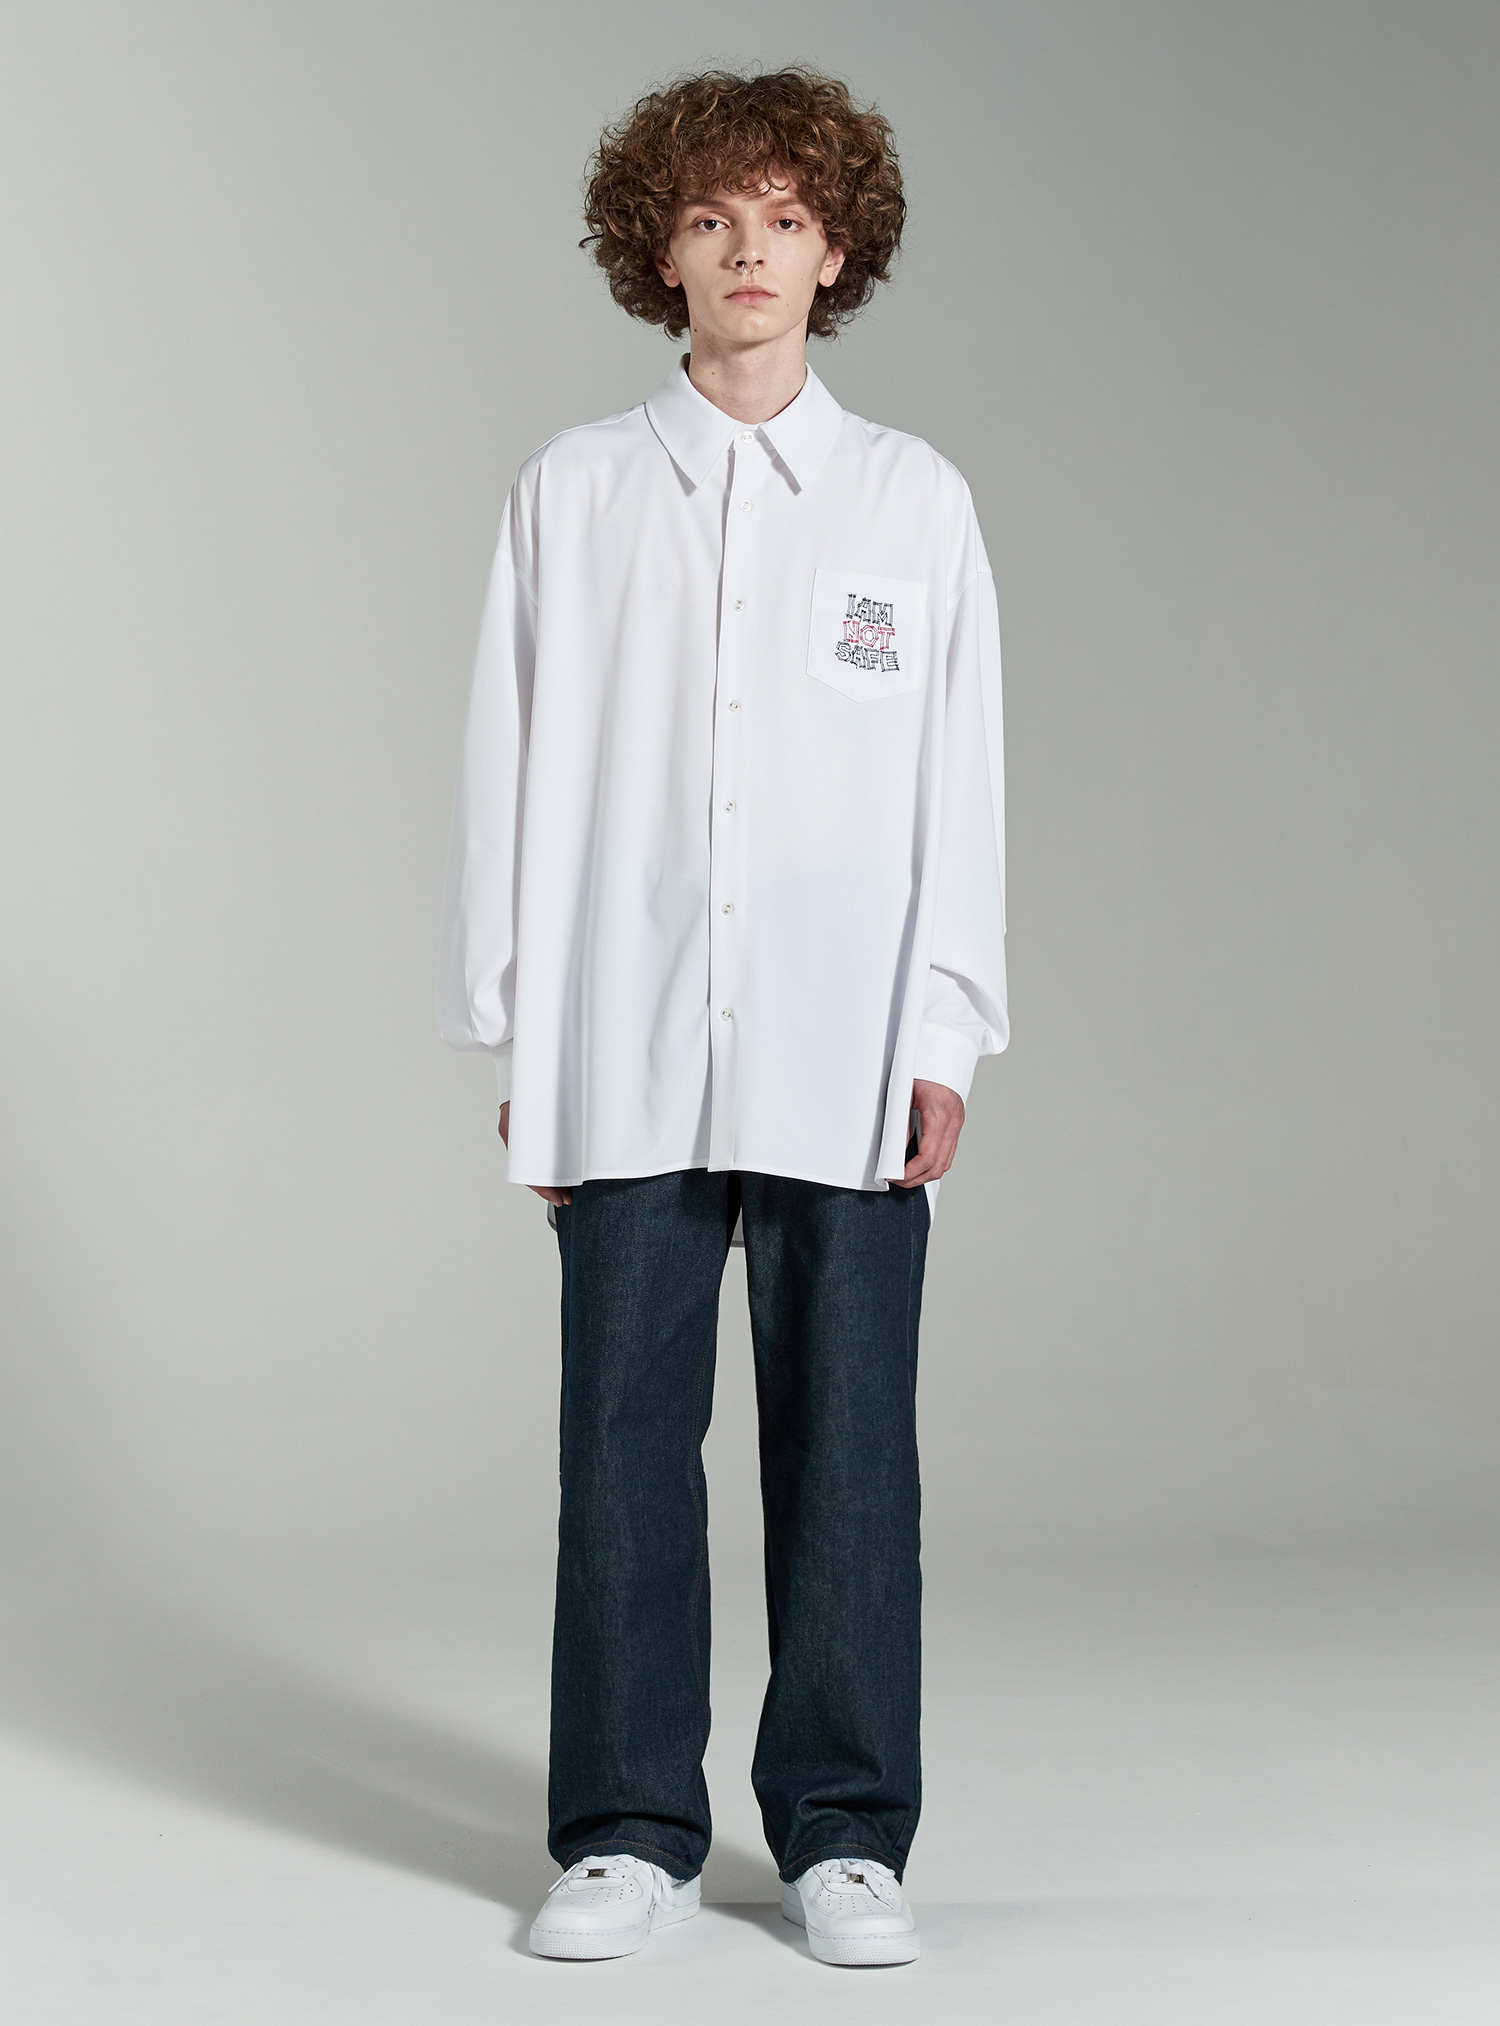 자체브랜드 - SIGNAL AVANTGARDE SHIRT WHITE